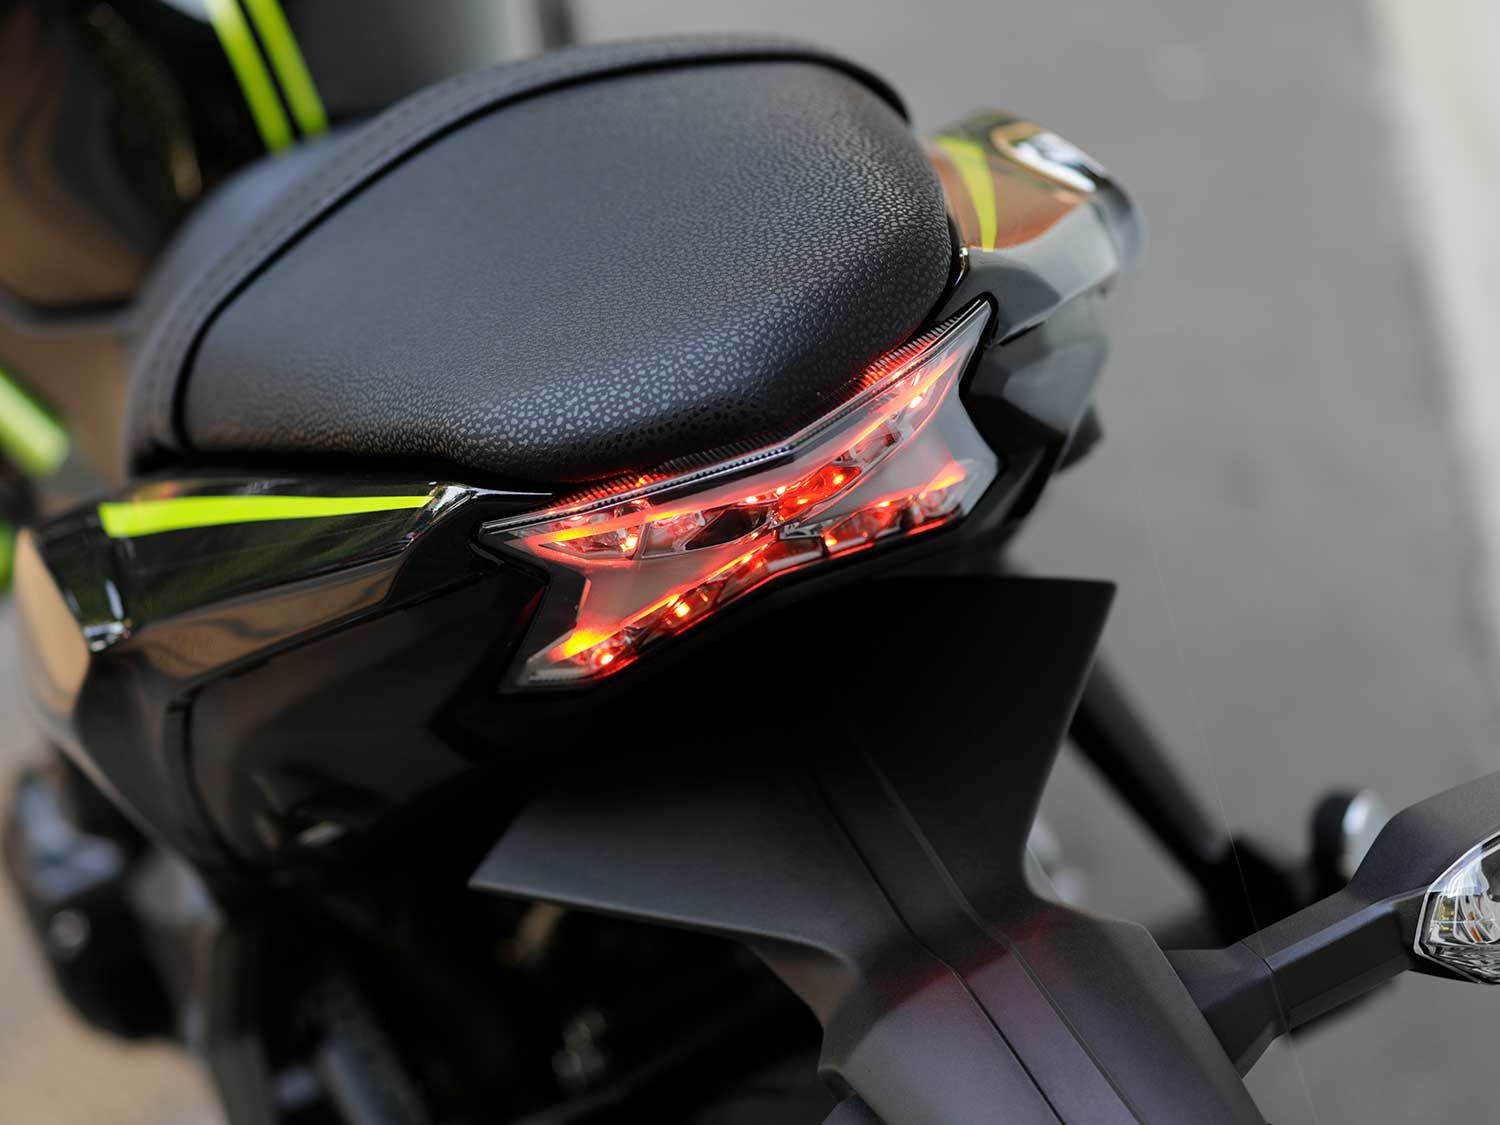 Kawasaki's classic 'Z' naked bike heritage is stamped into the LED taillight.